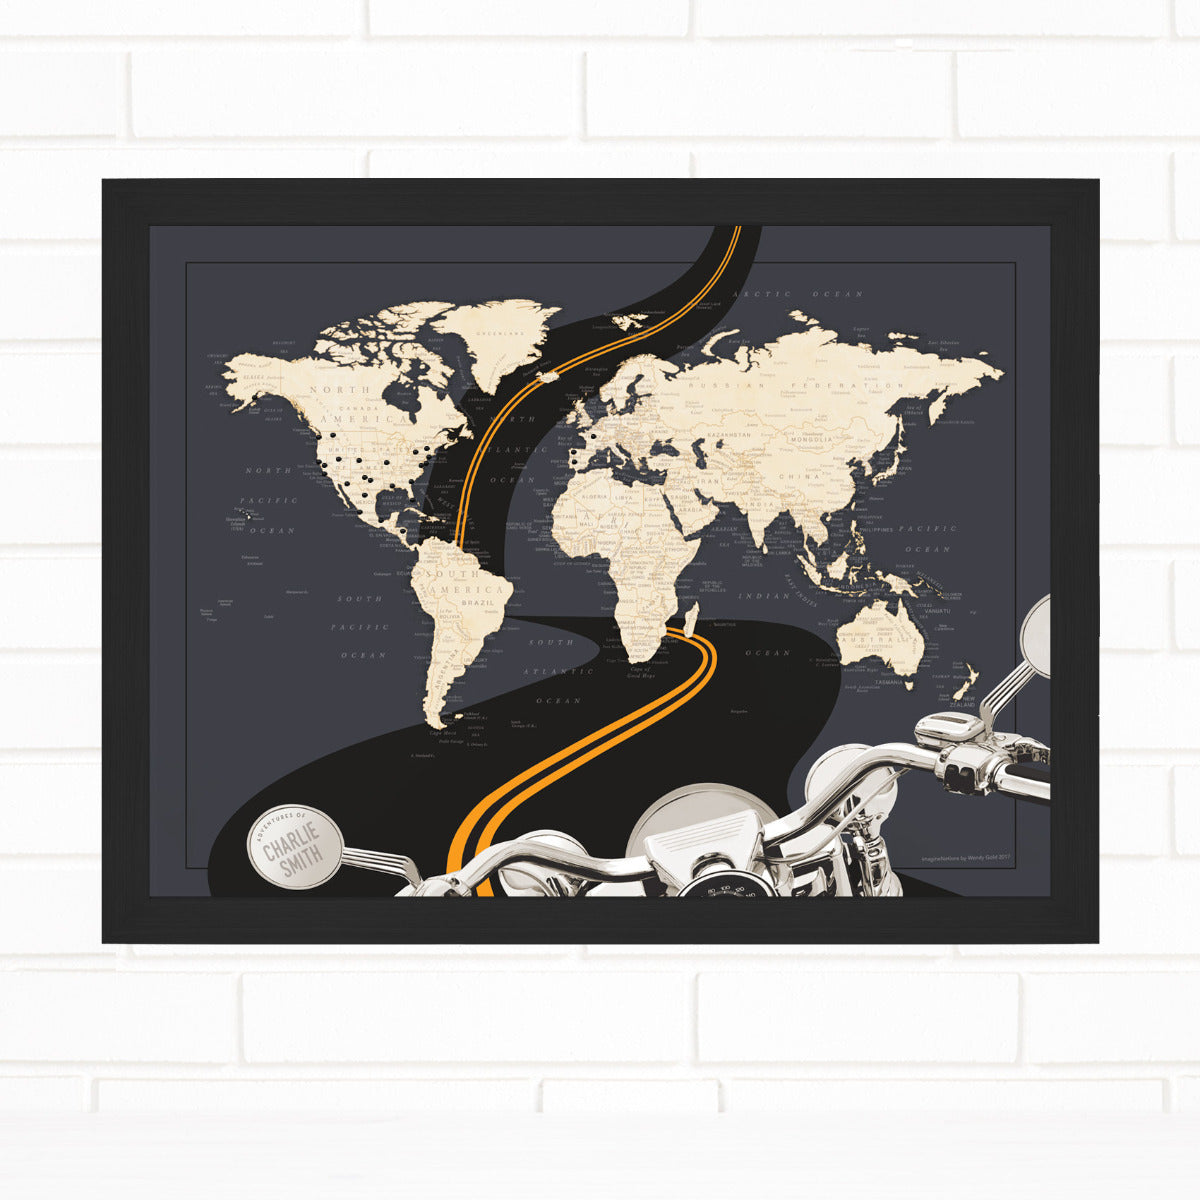 Motorcycle Adventures Pin Map Travel Map by Wendy Gold